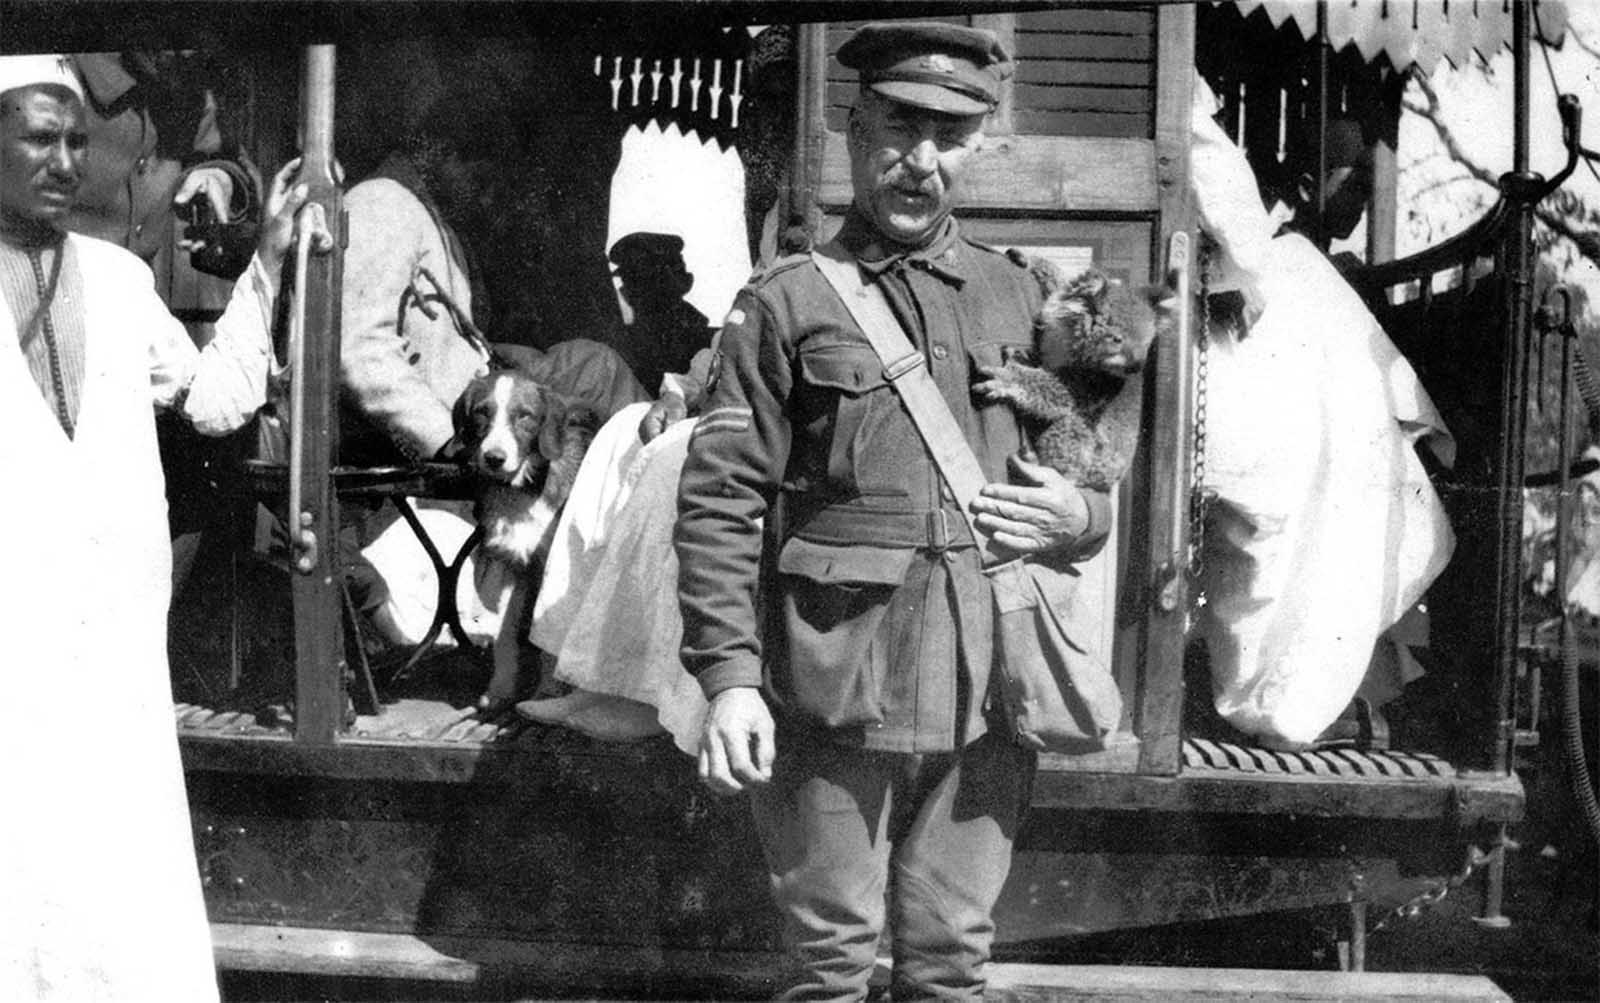 A corporal, probably on the staff of the 2nd Australian general hospital, holds a koala, a pet or mascot in Cairo, in 1915.